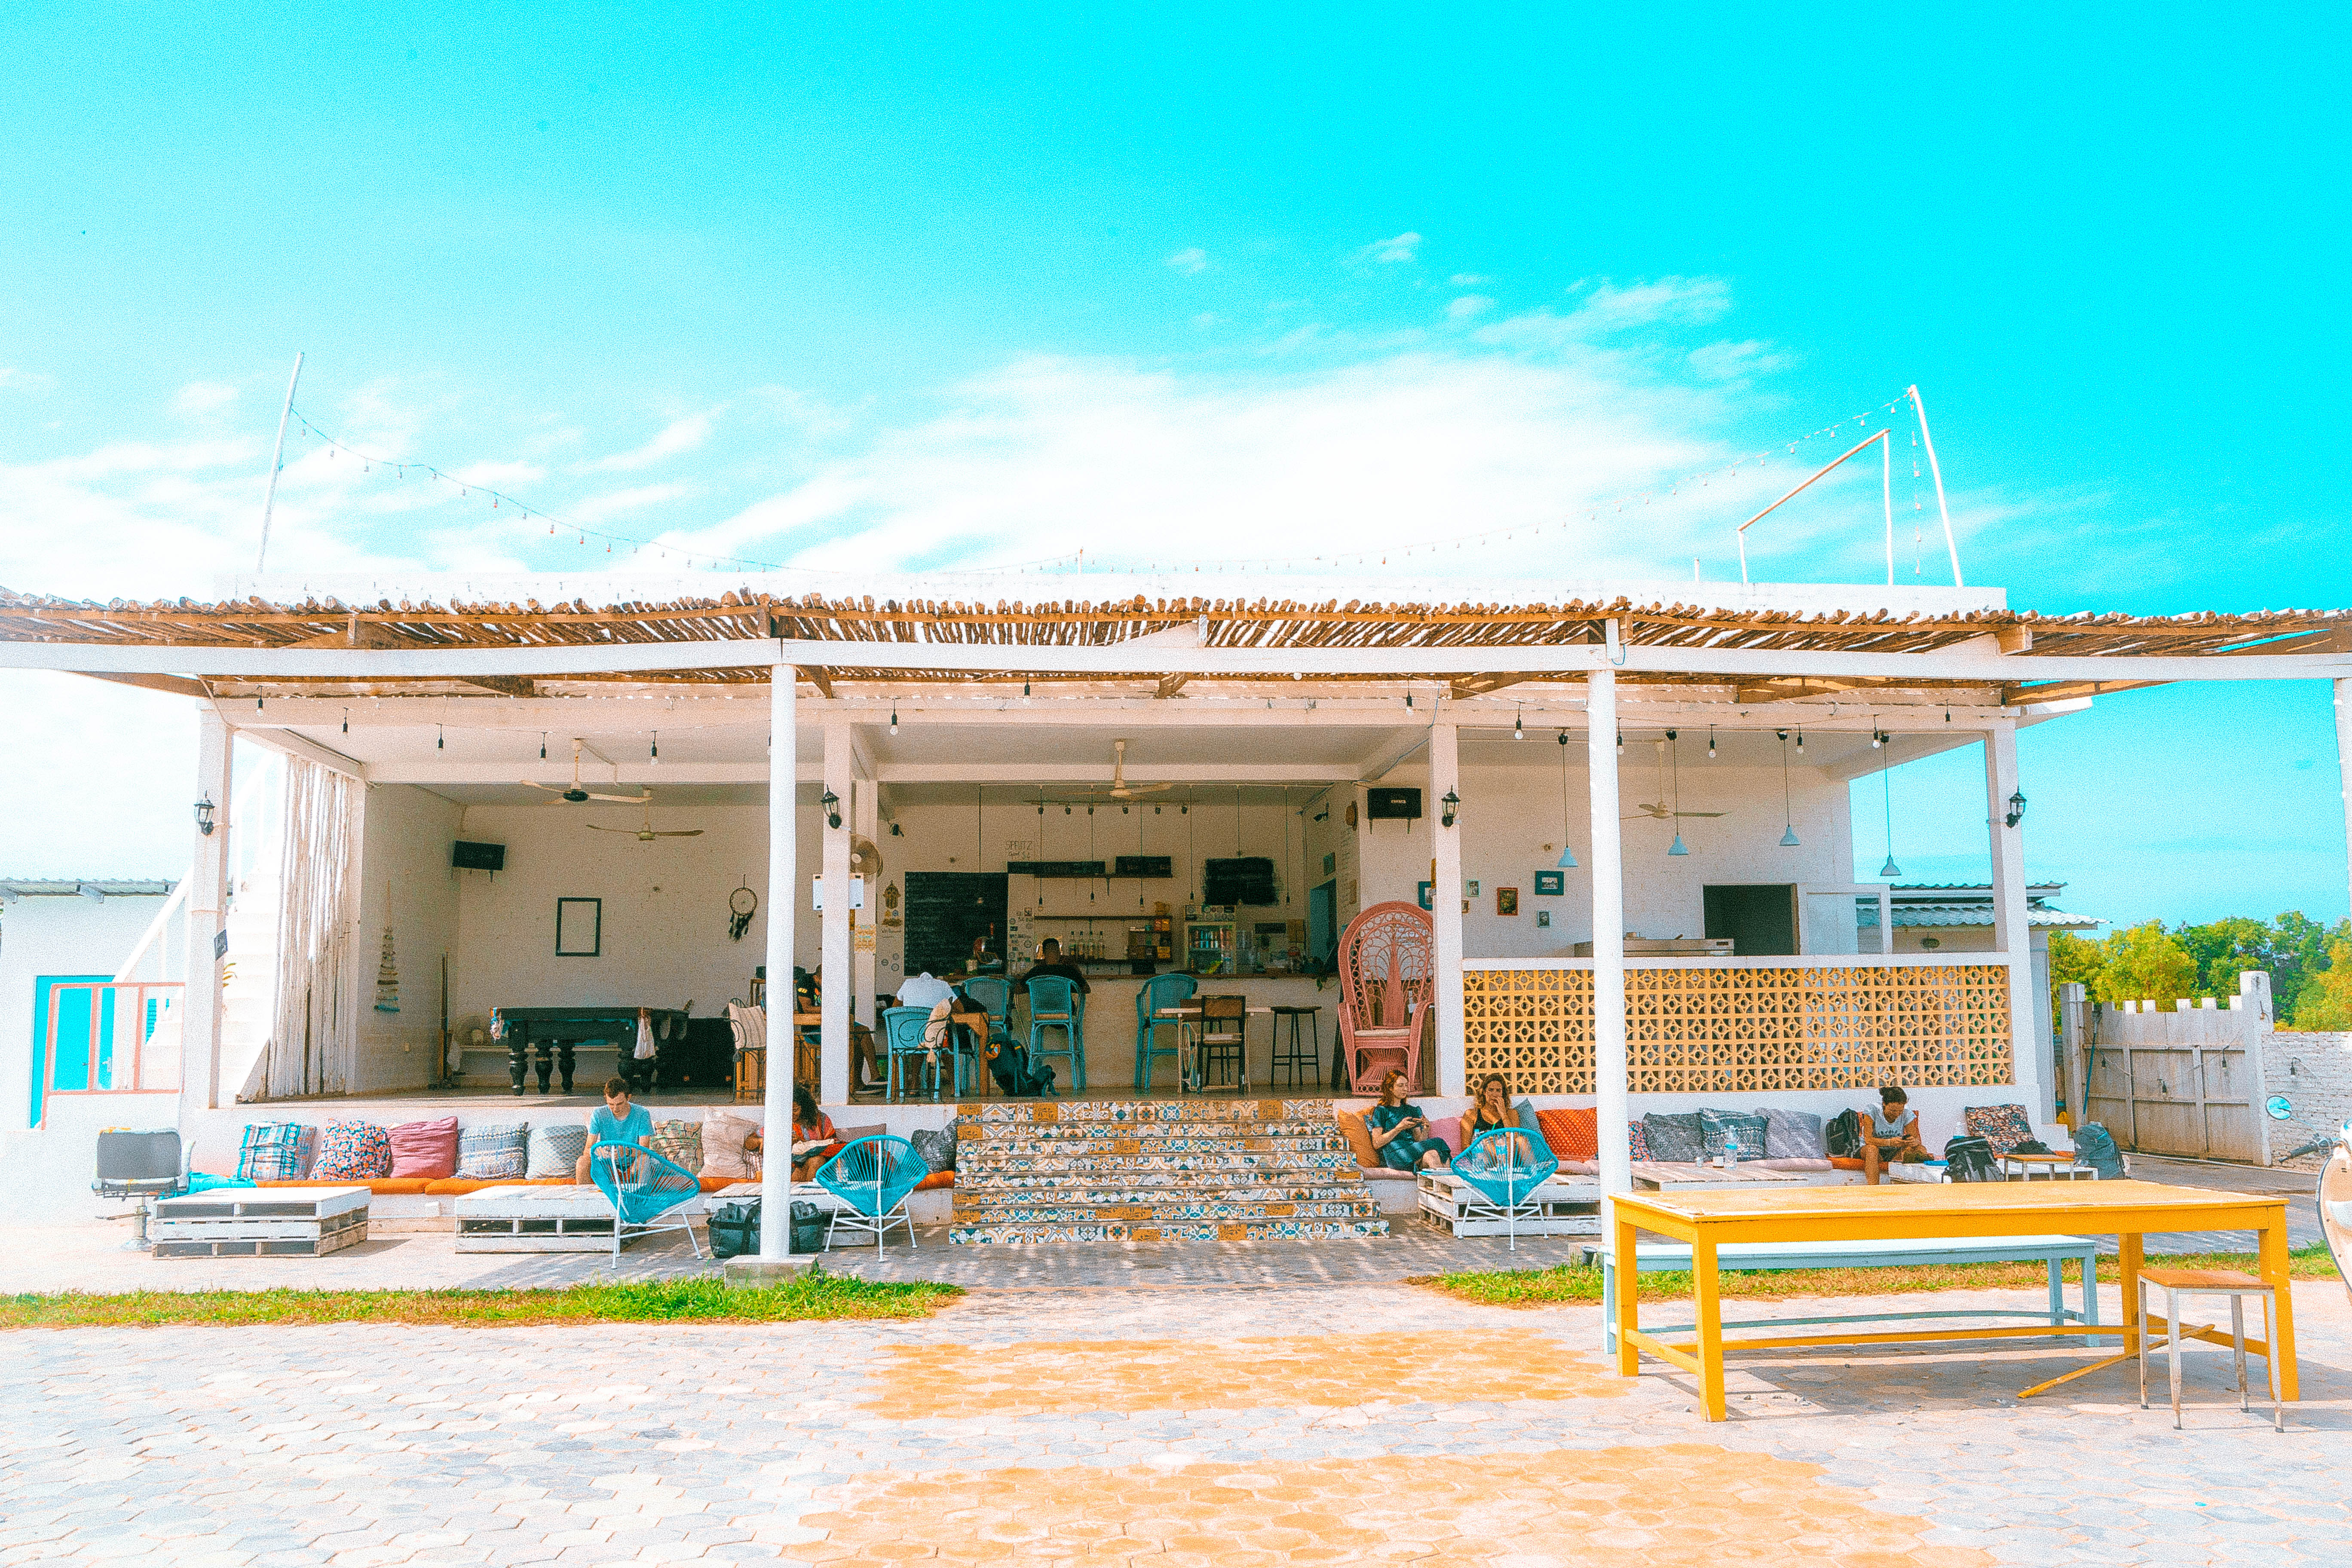 boho hostel in sihanoukville cambodia with a nice chilling area and accomodation